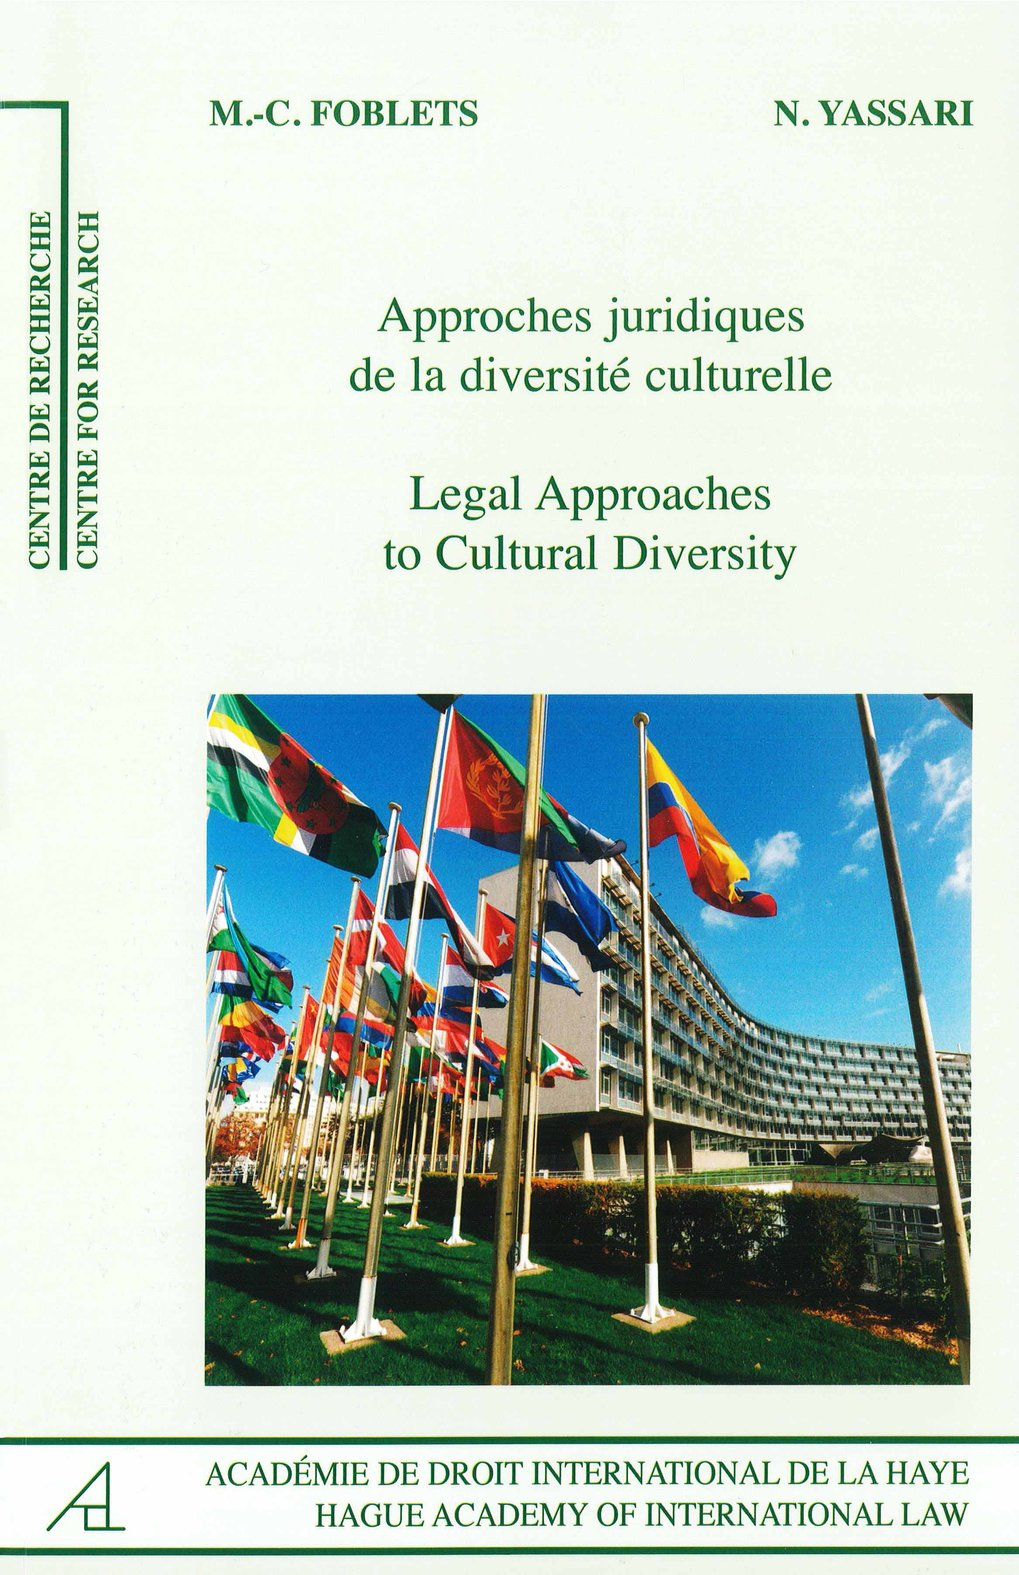 Legal Approaches to Cultural Diversity